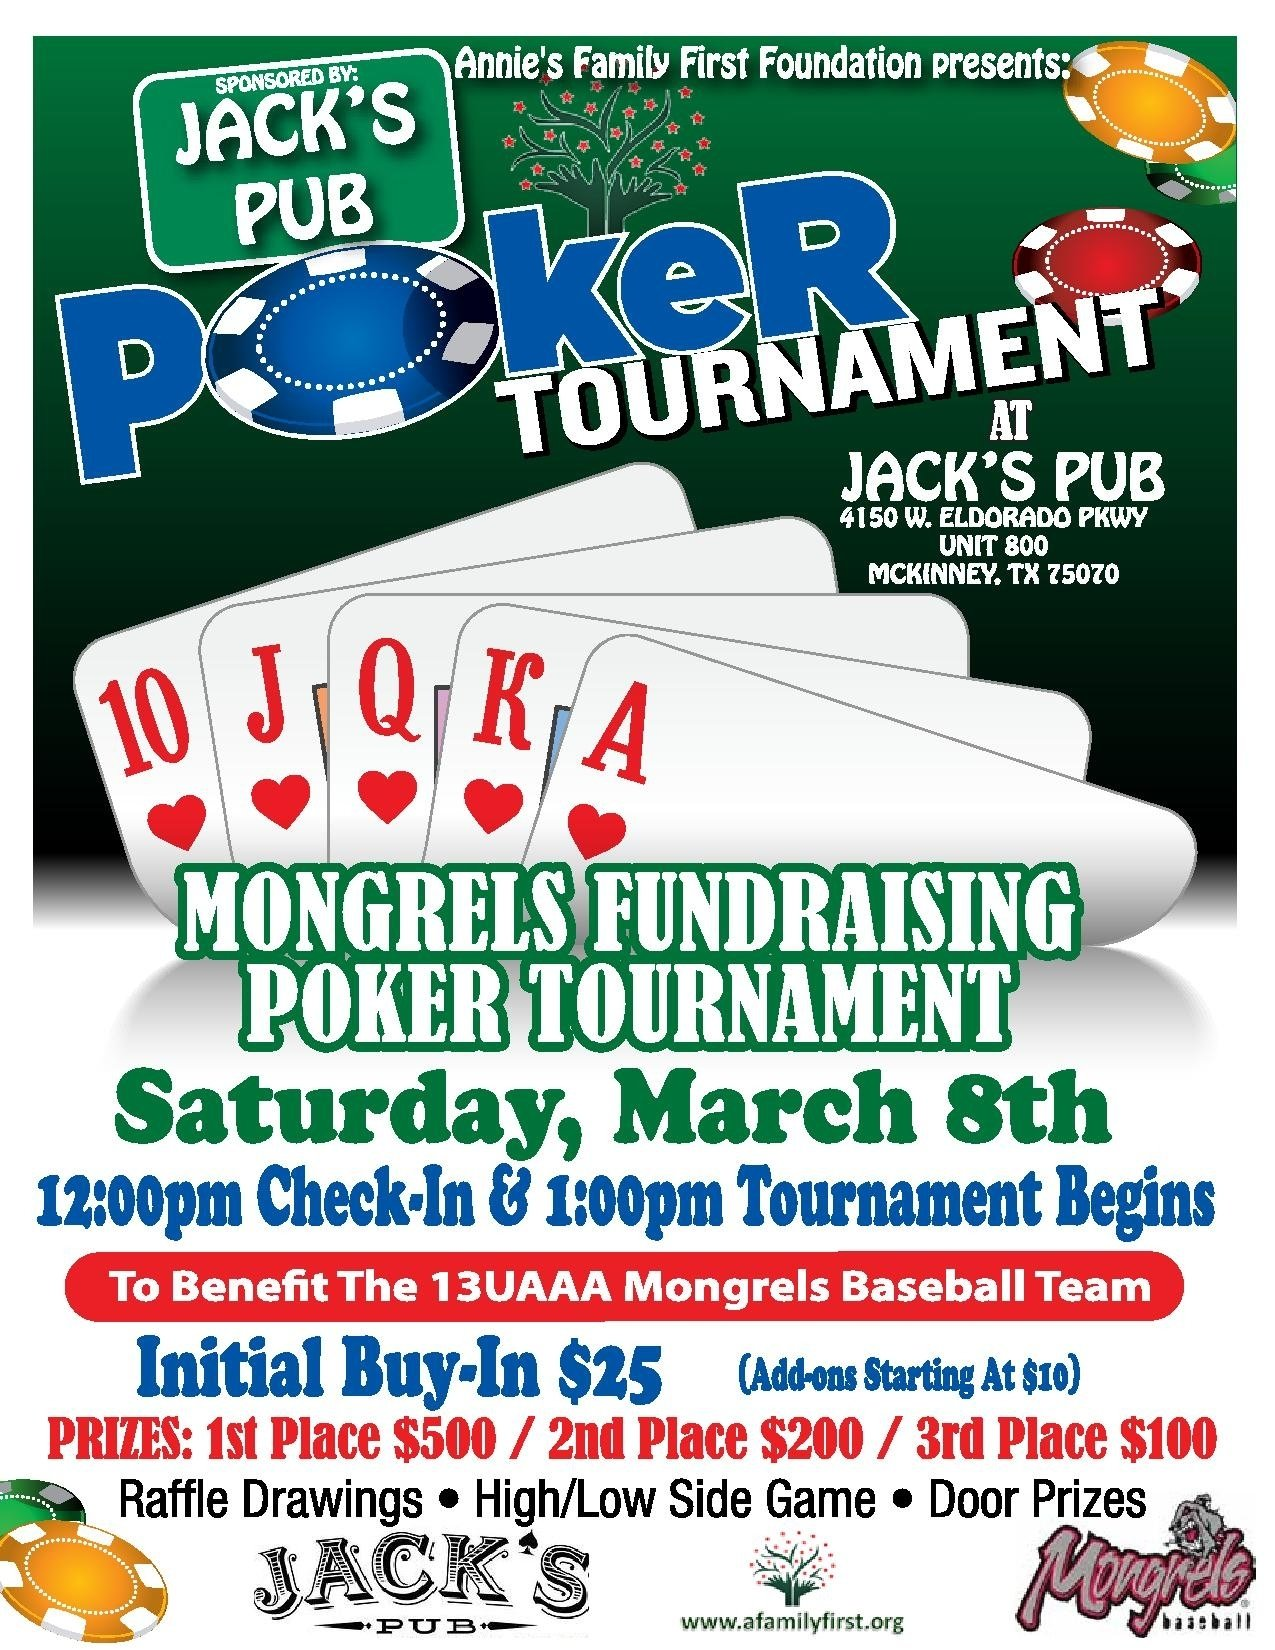 10 Attractive Fundraising Ideas For Softball Teams poker fundraising tournament benefitting the 13uaaa mckinney 1 2020